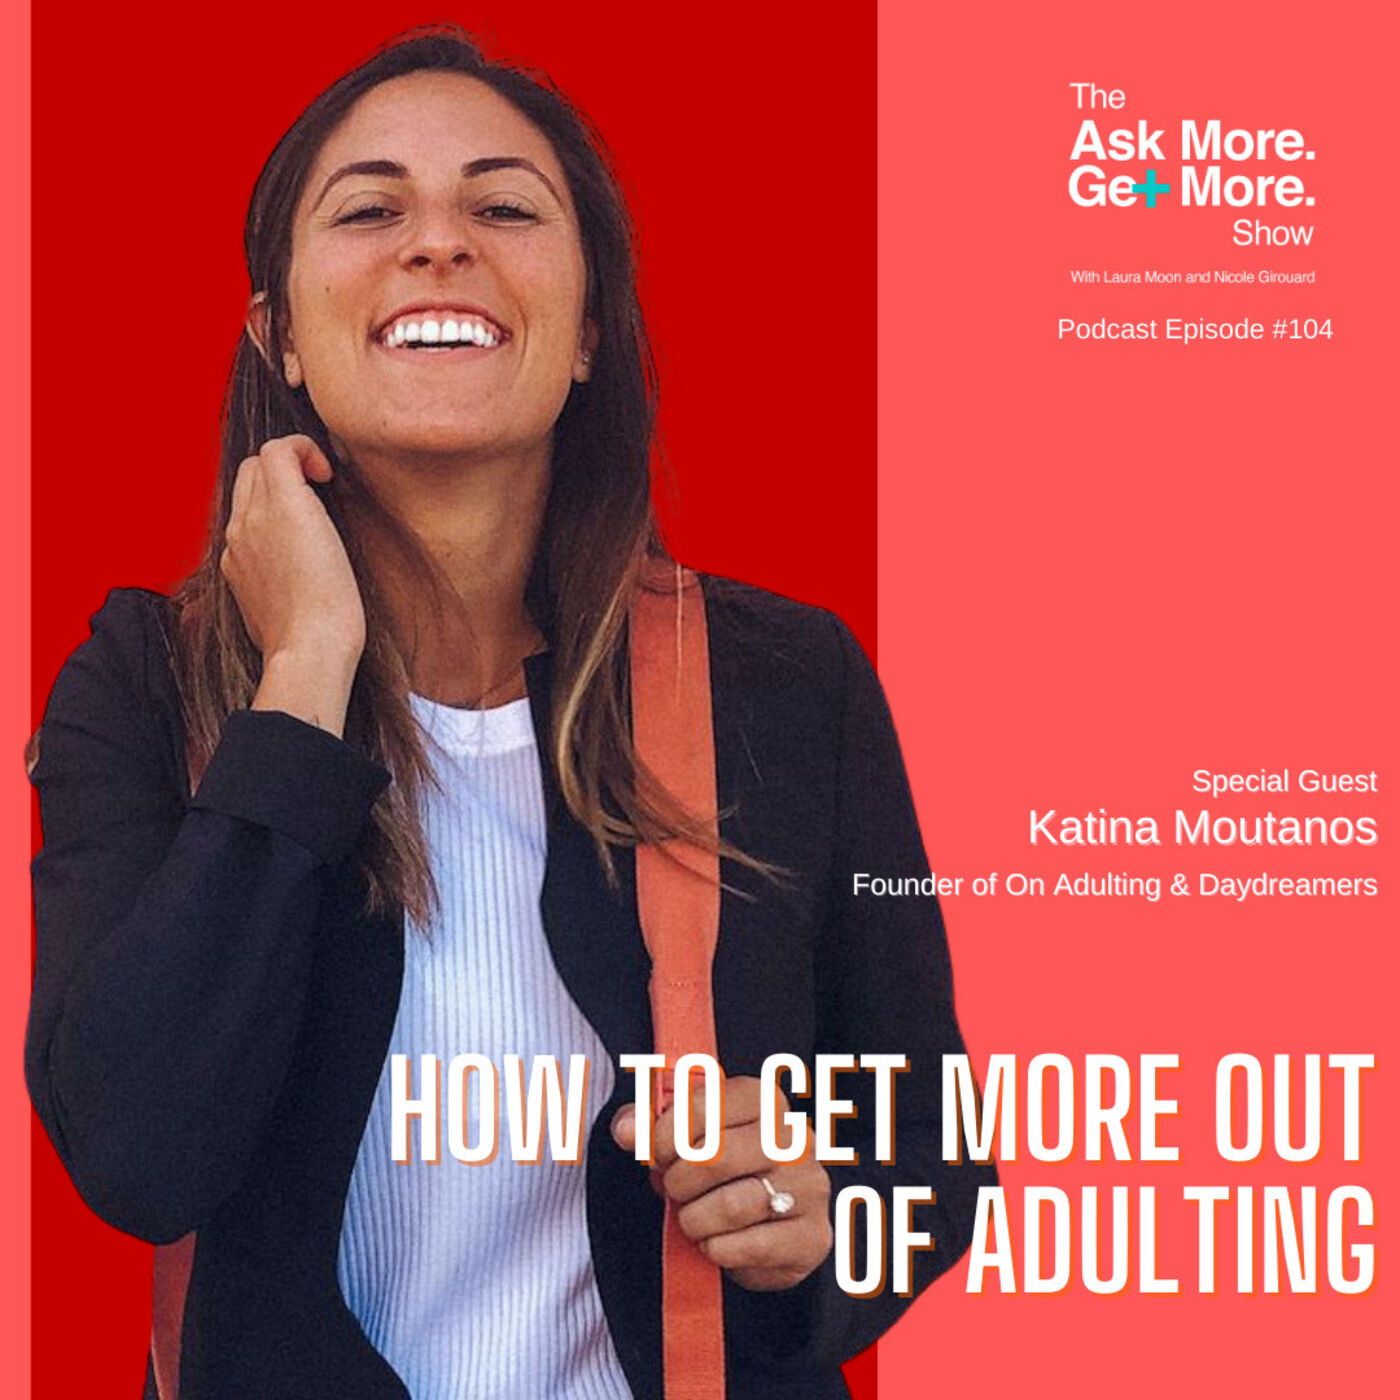 How to Get More Out of Adulting [Katina Moutanos]